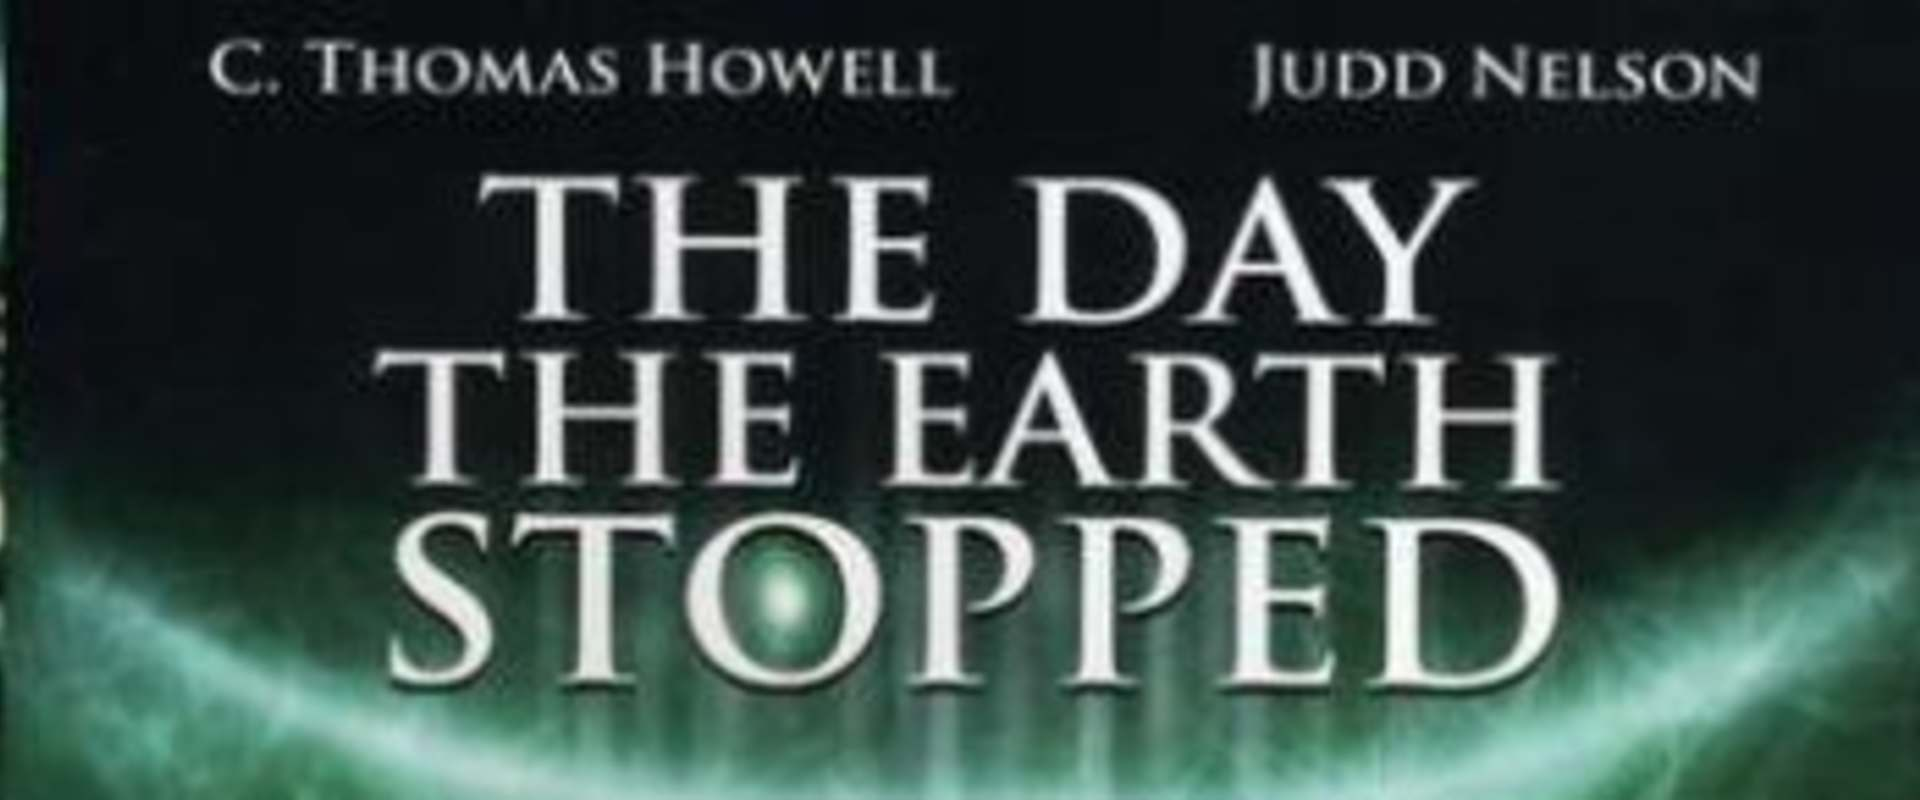 The Day the Earth Stopped background 2